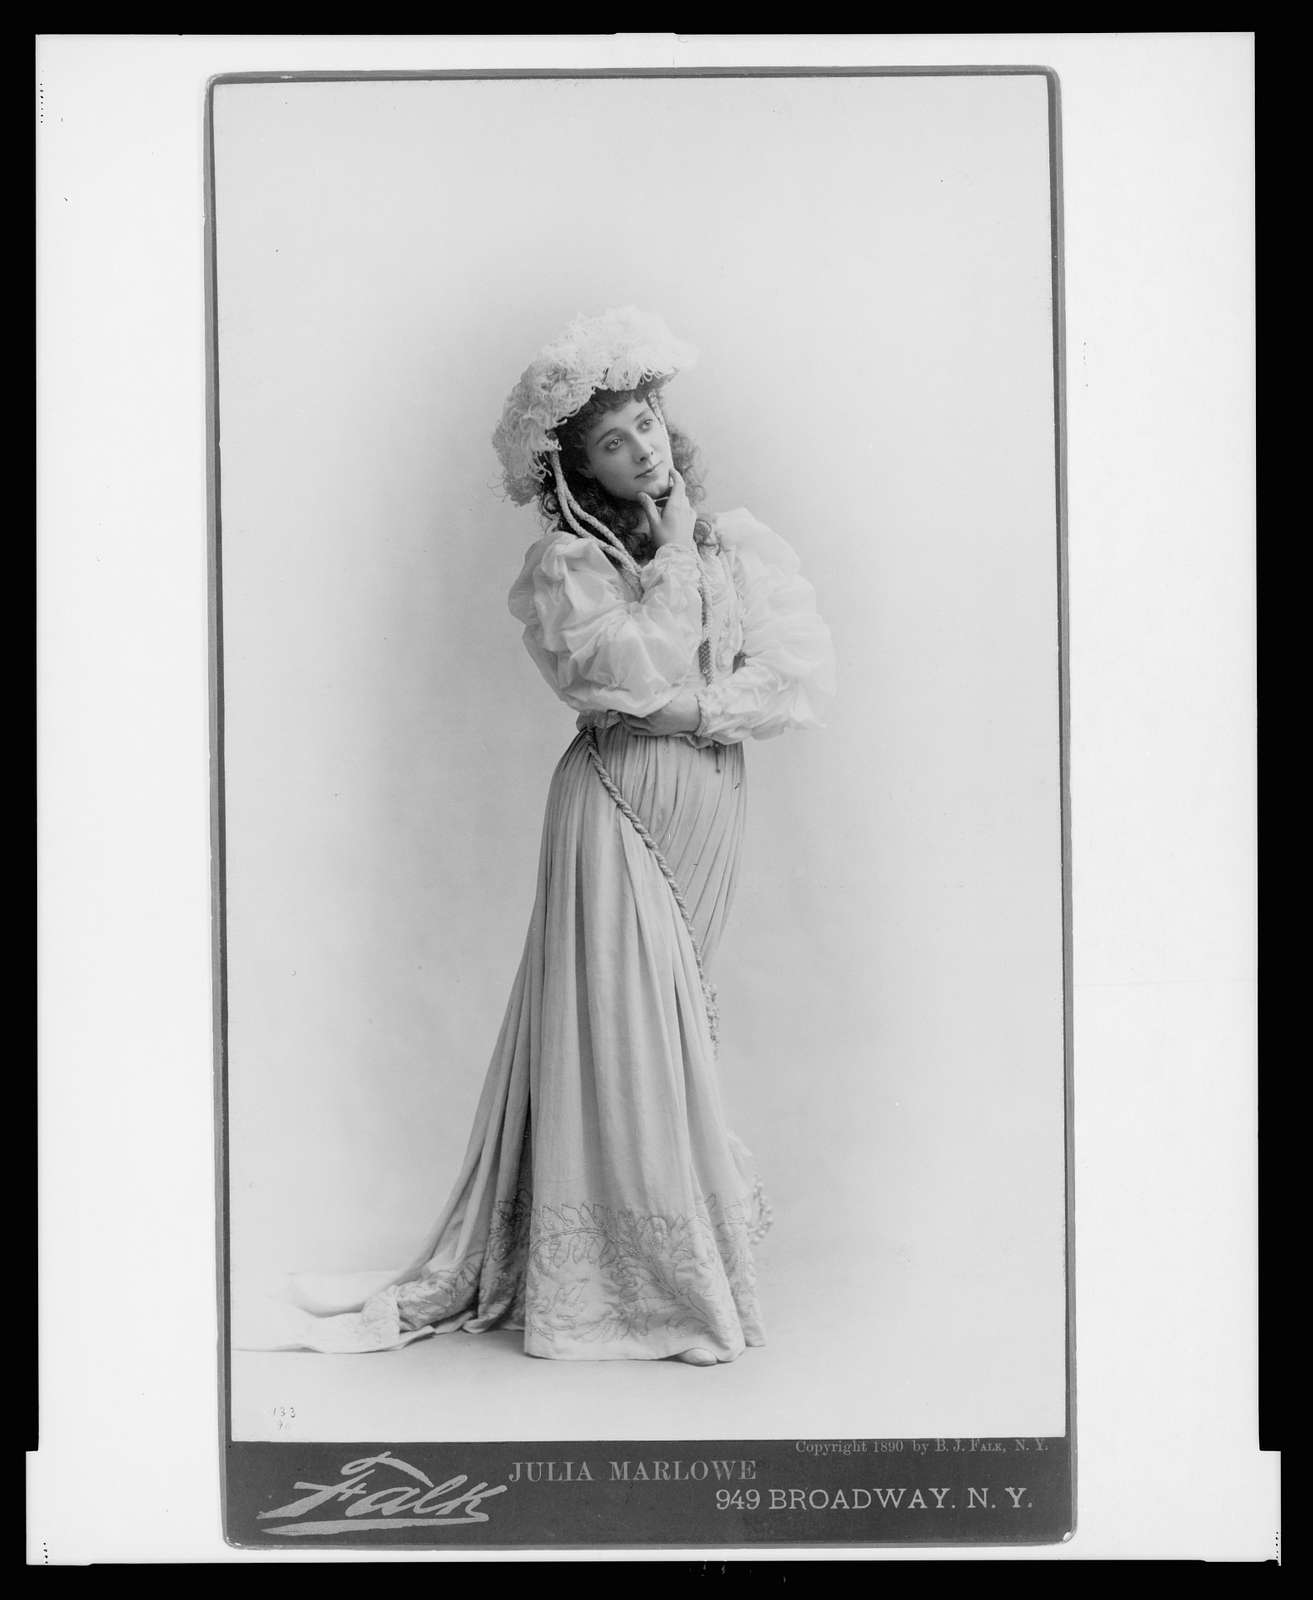 Julia Marlowe, full-length portrait, standing, facing right, with hand on chin Falk, 949 Broadway, N.Y